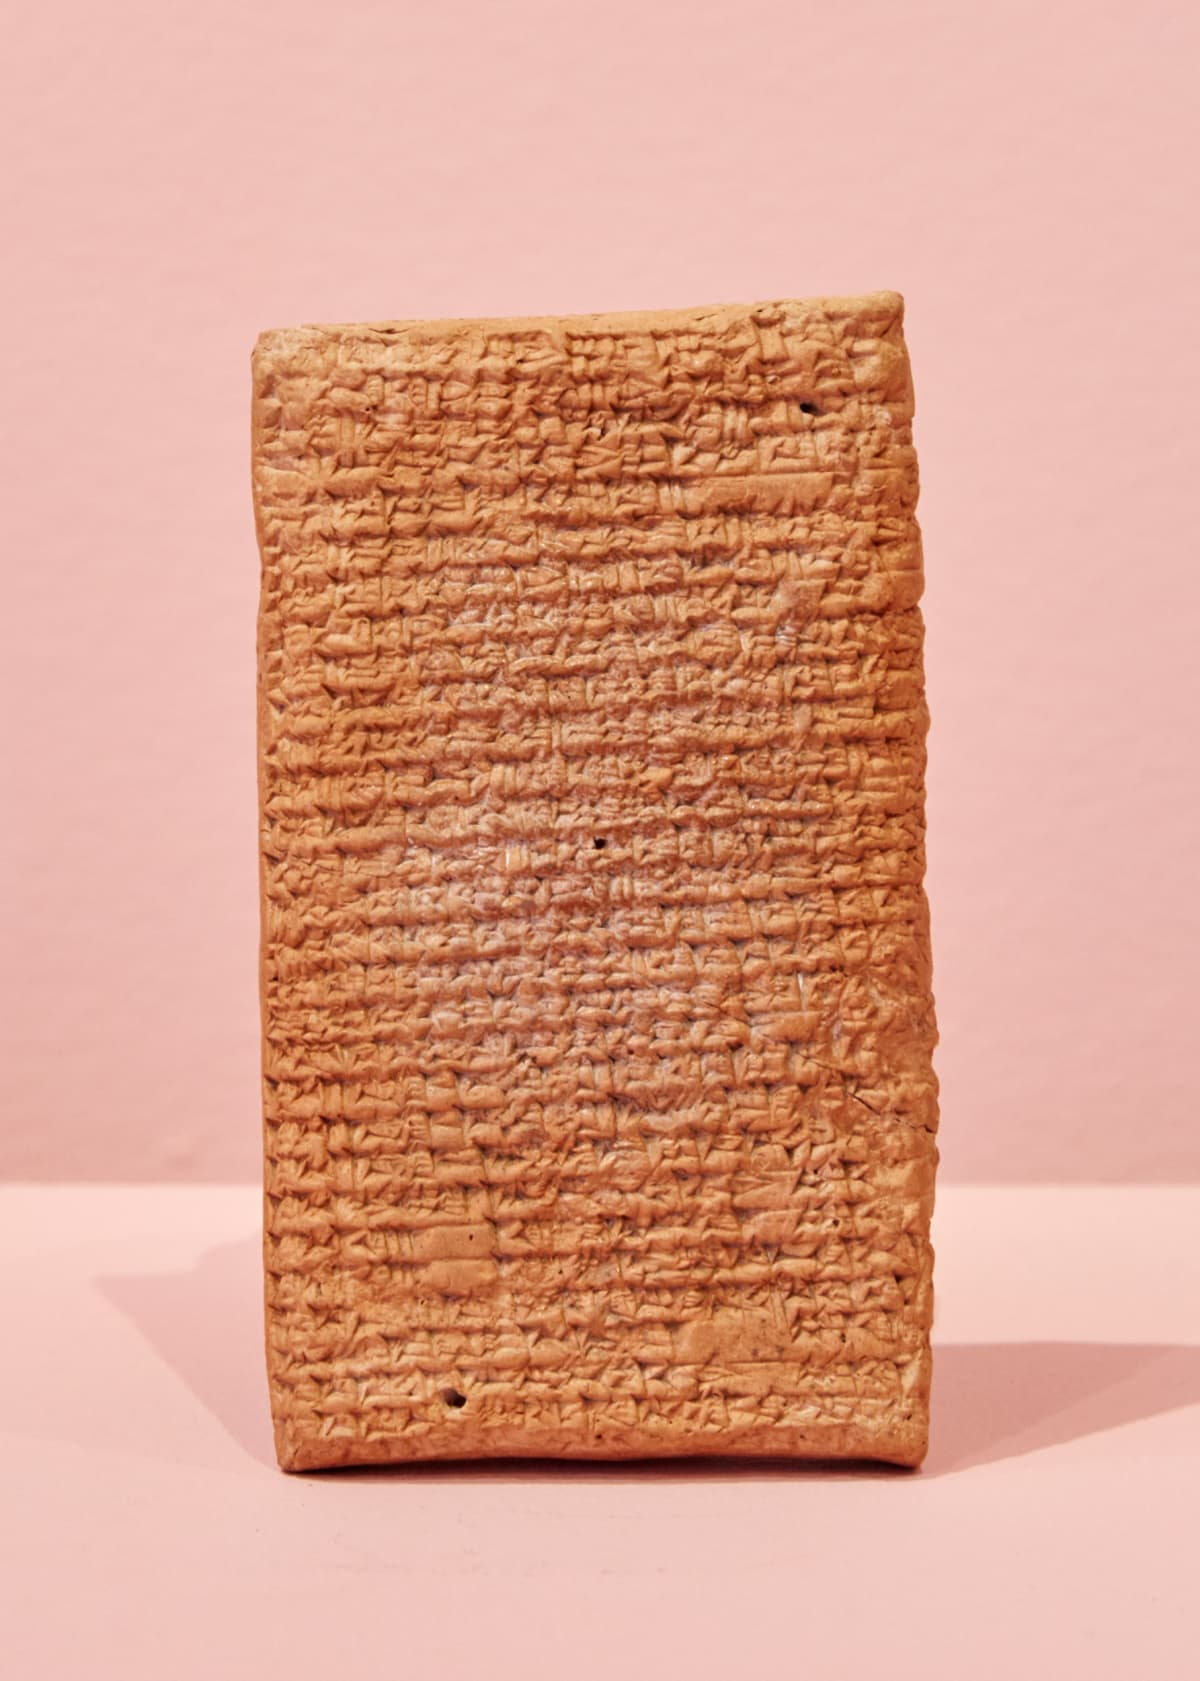 Arranged Marriage Cuneiform Tablet